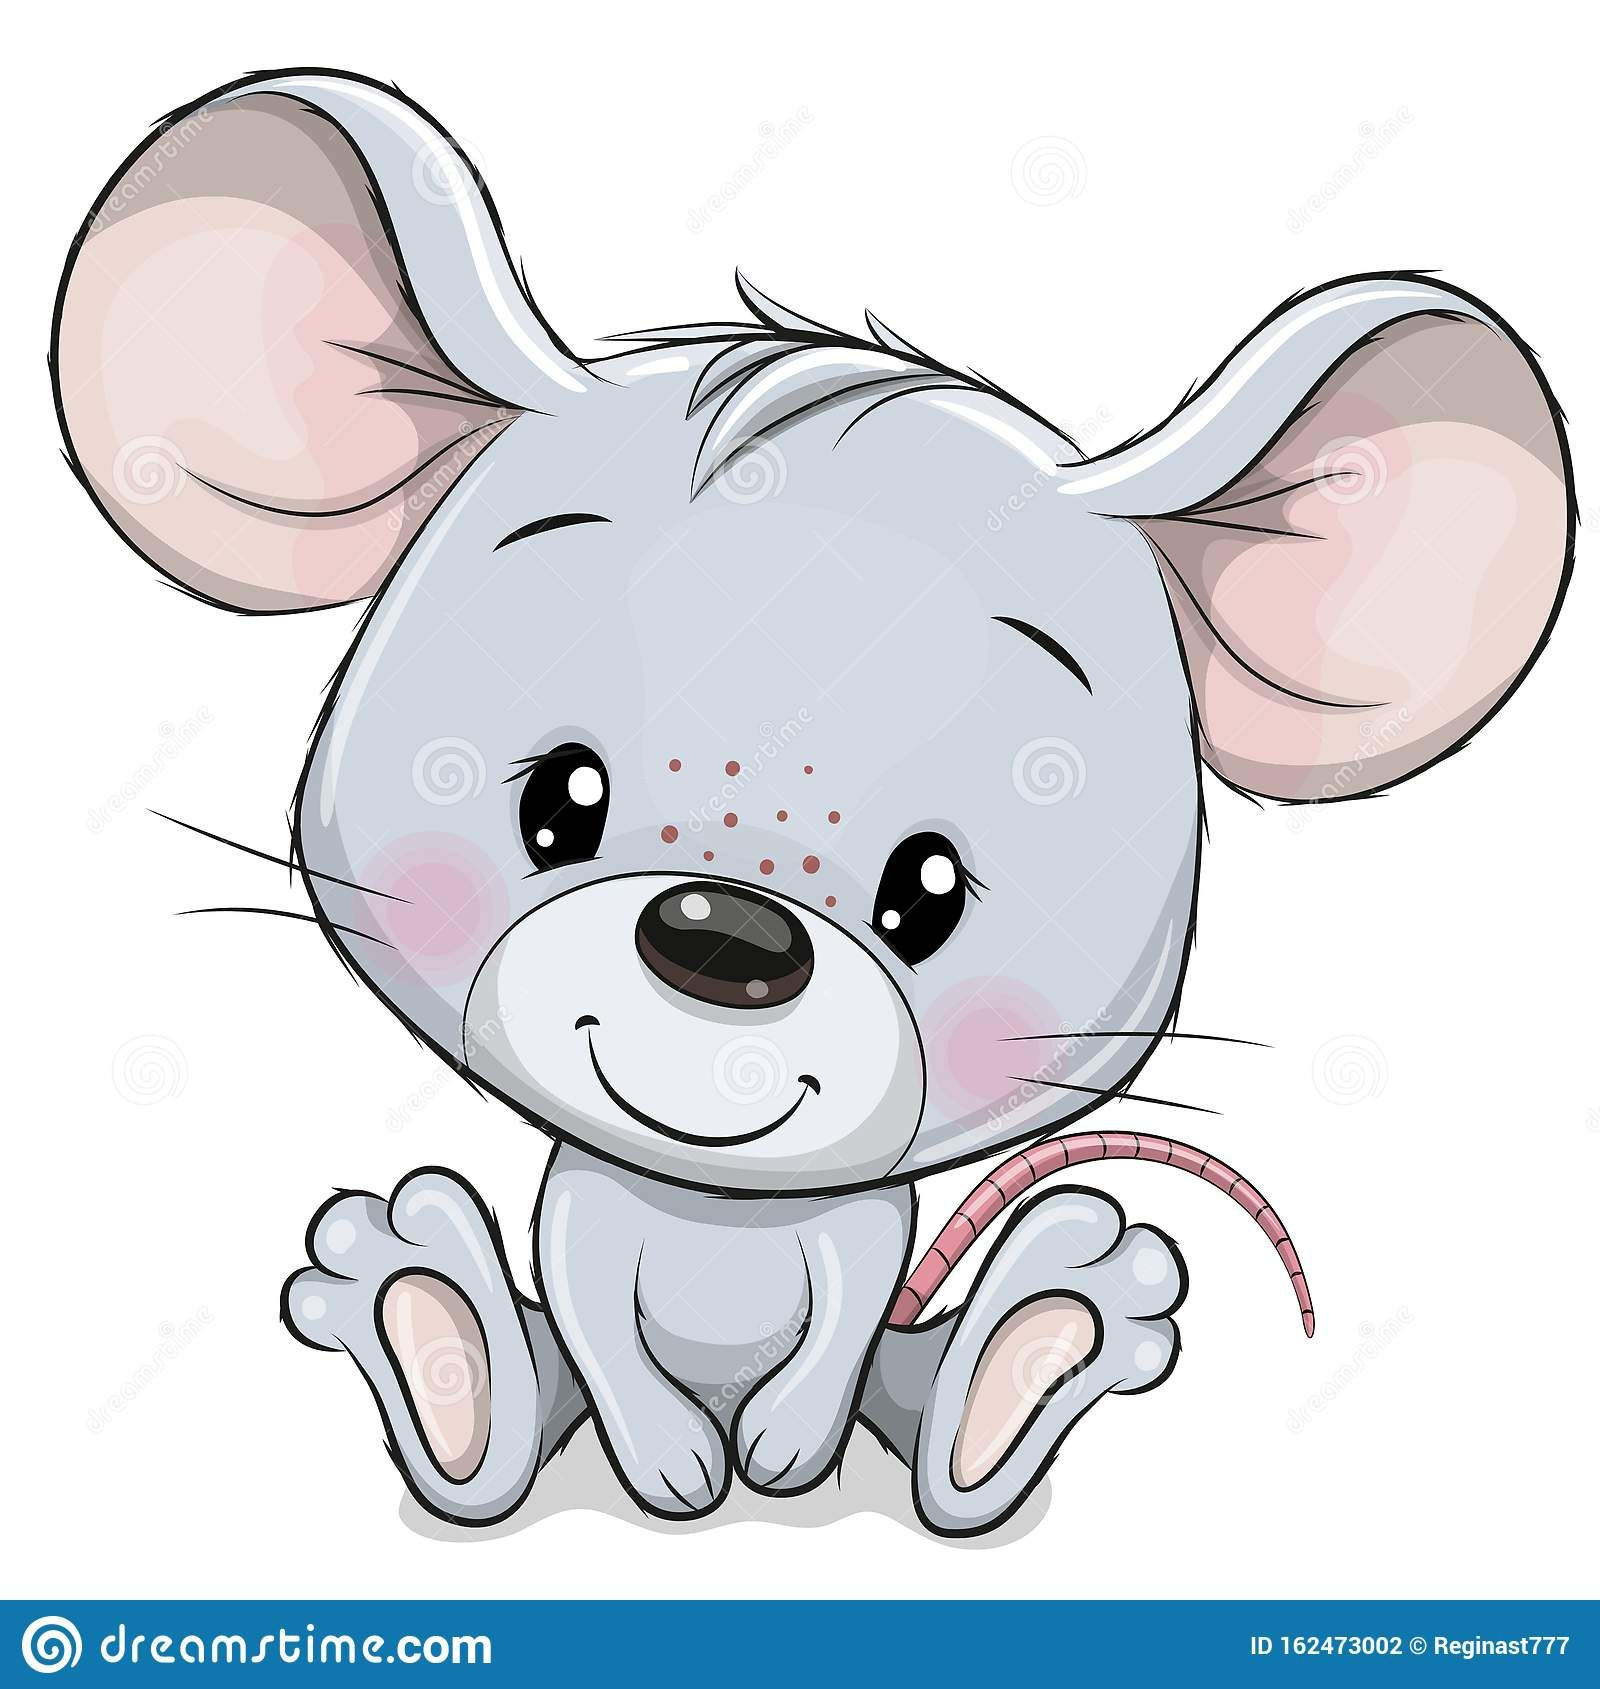 Illustration About Cute Cartoon Mouse Isolated On A White